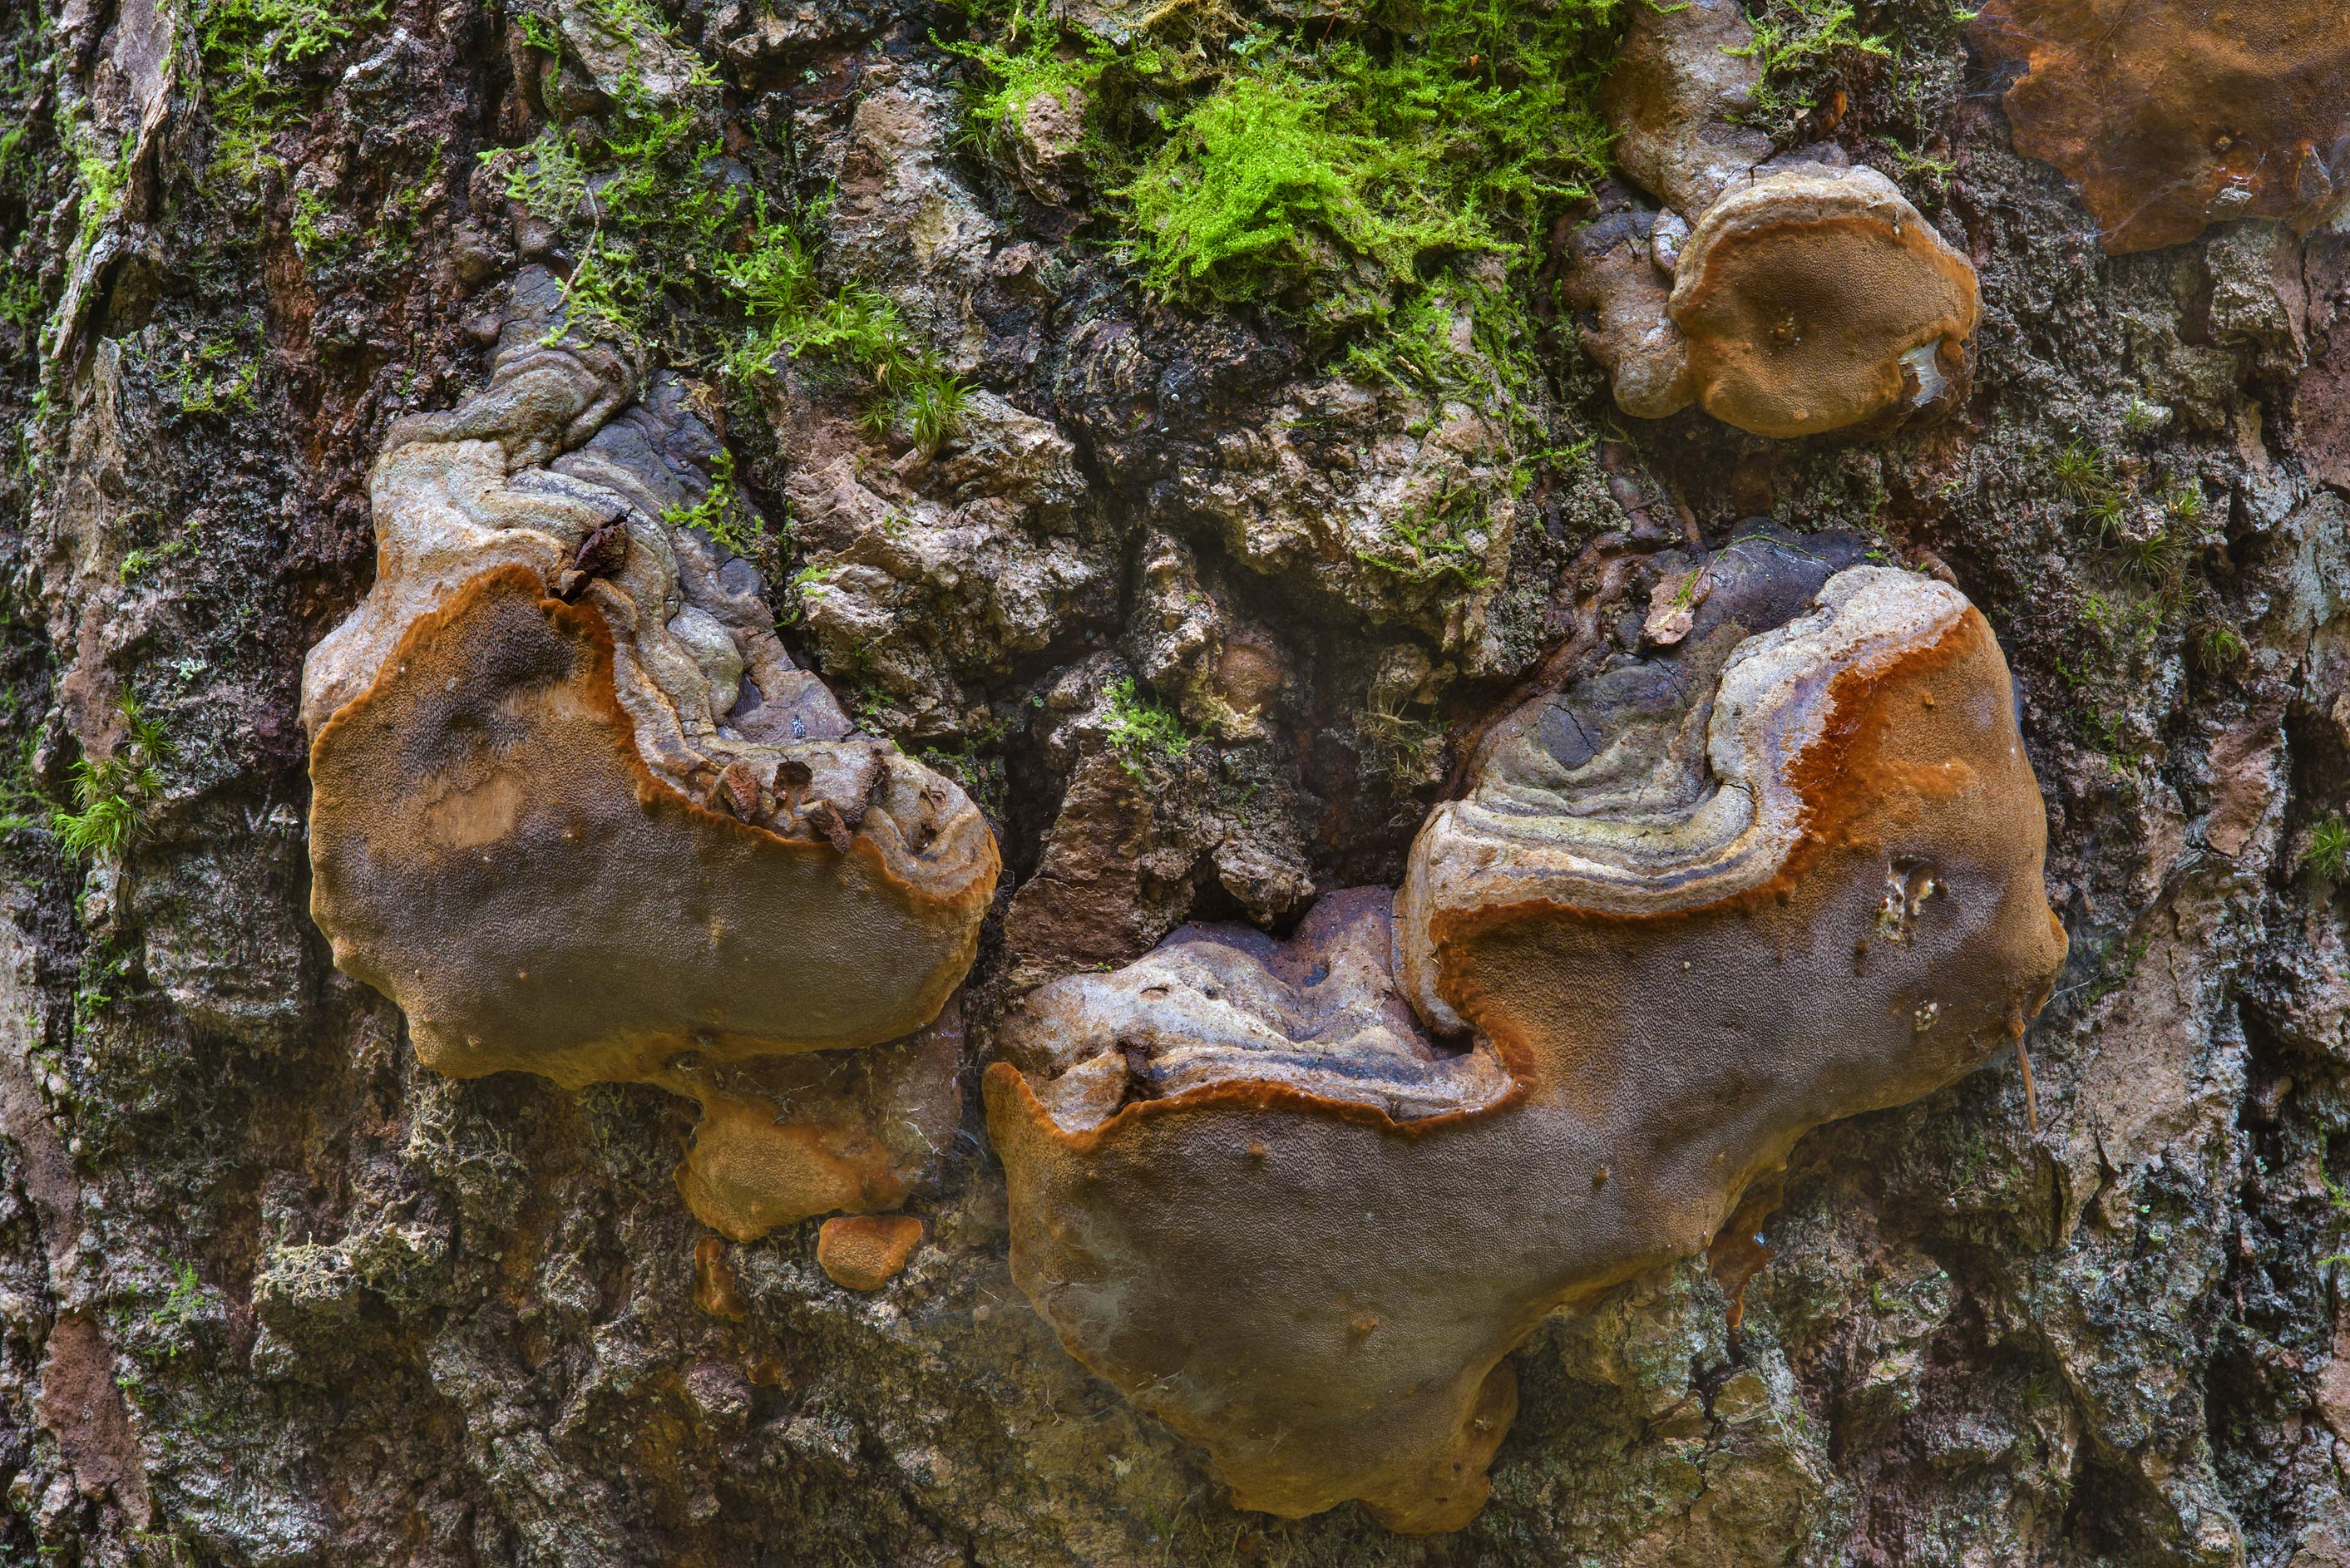 False Tinder Conk mushroom (Phellinus tremulae, a...south from St.Petersburg, Russia